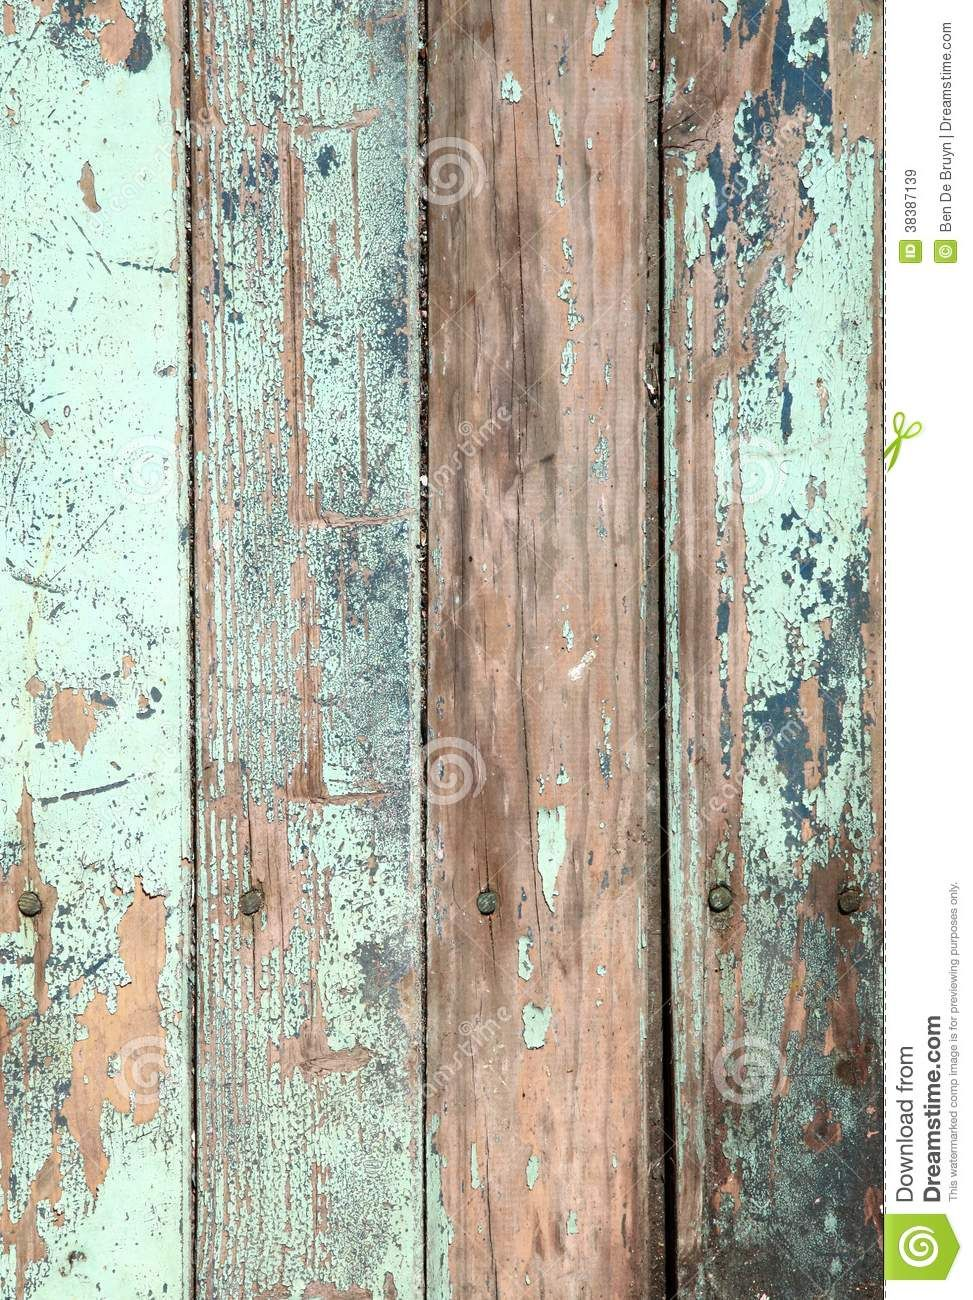 How To Render A Distressed Wood Paint Effect Google